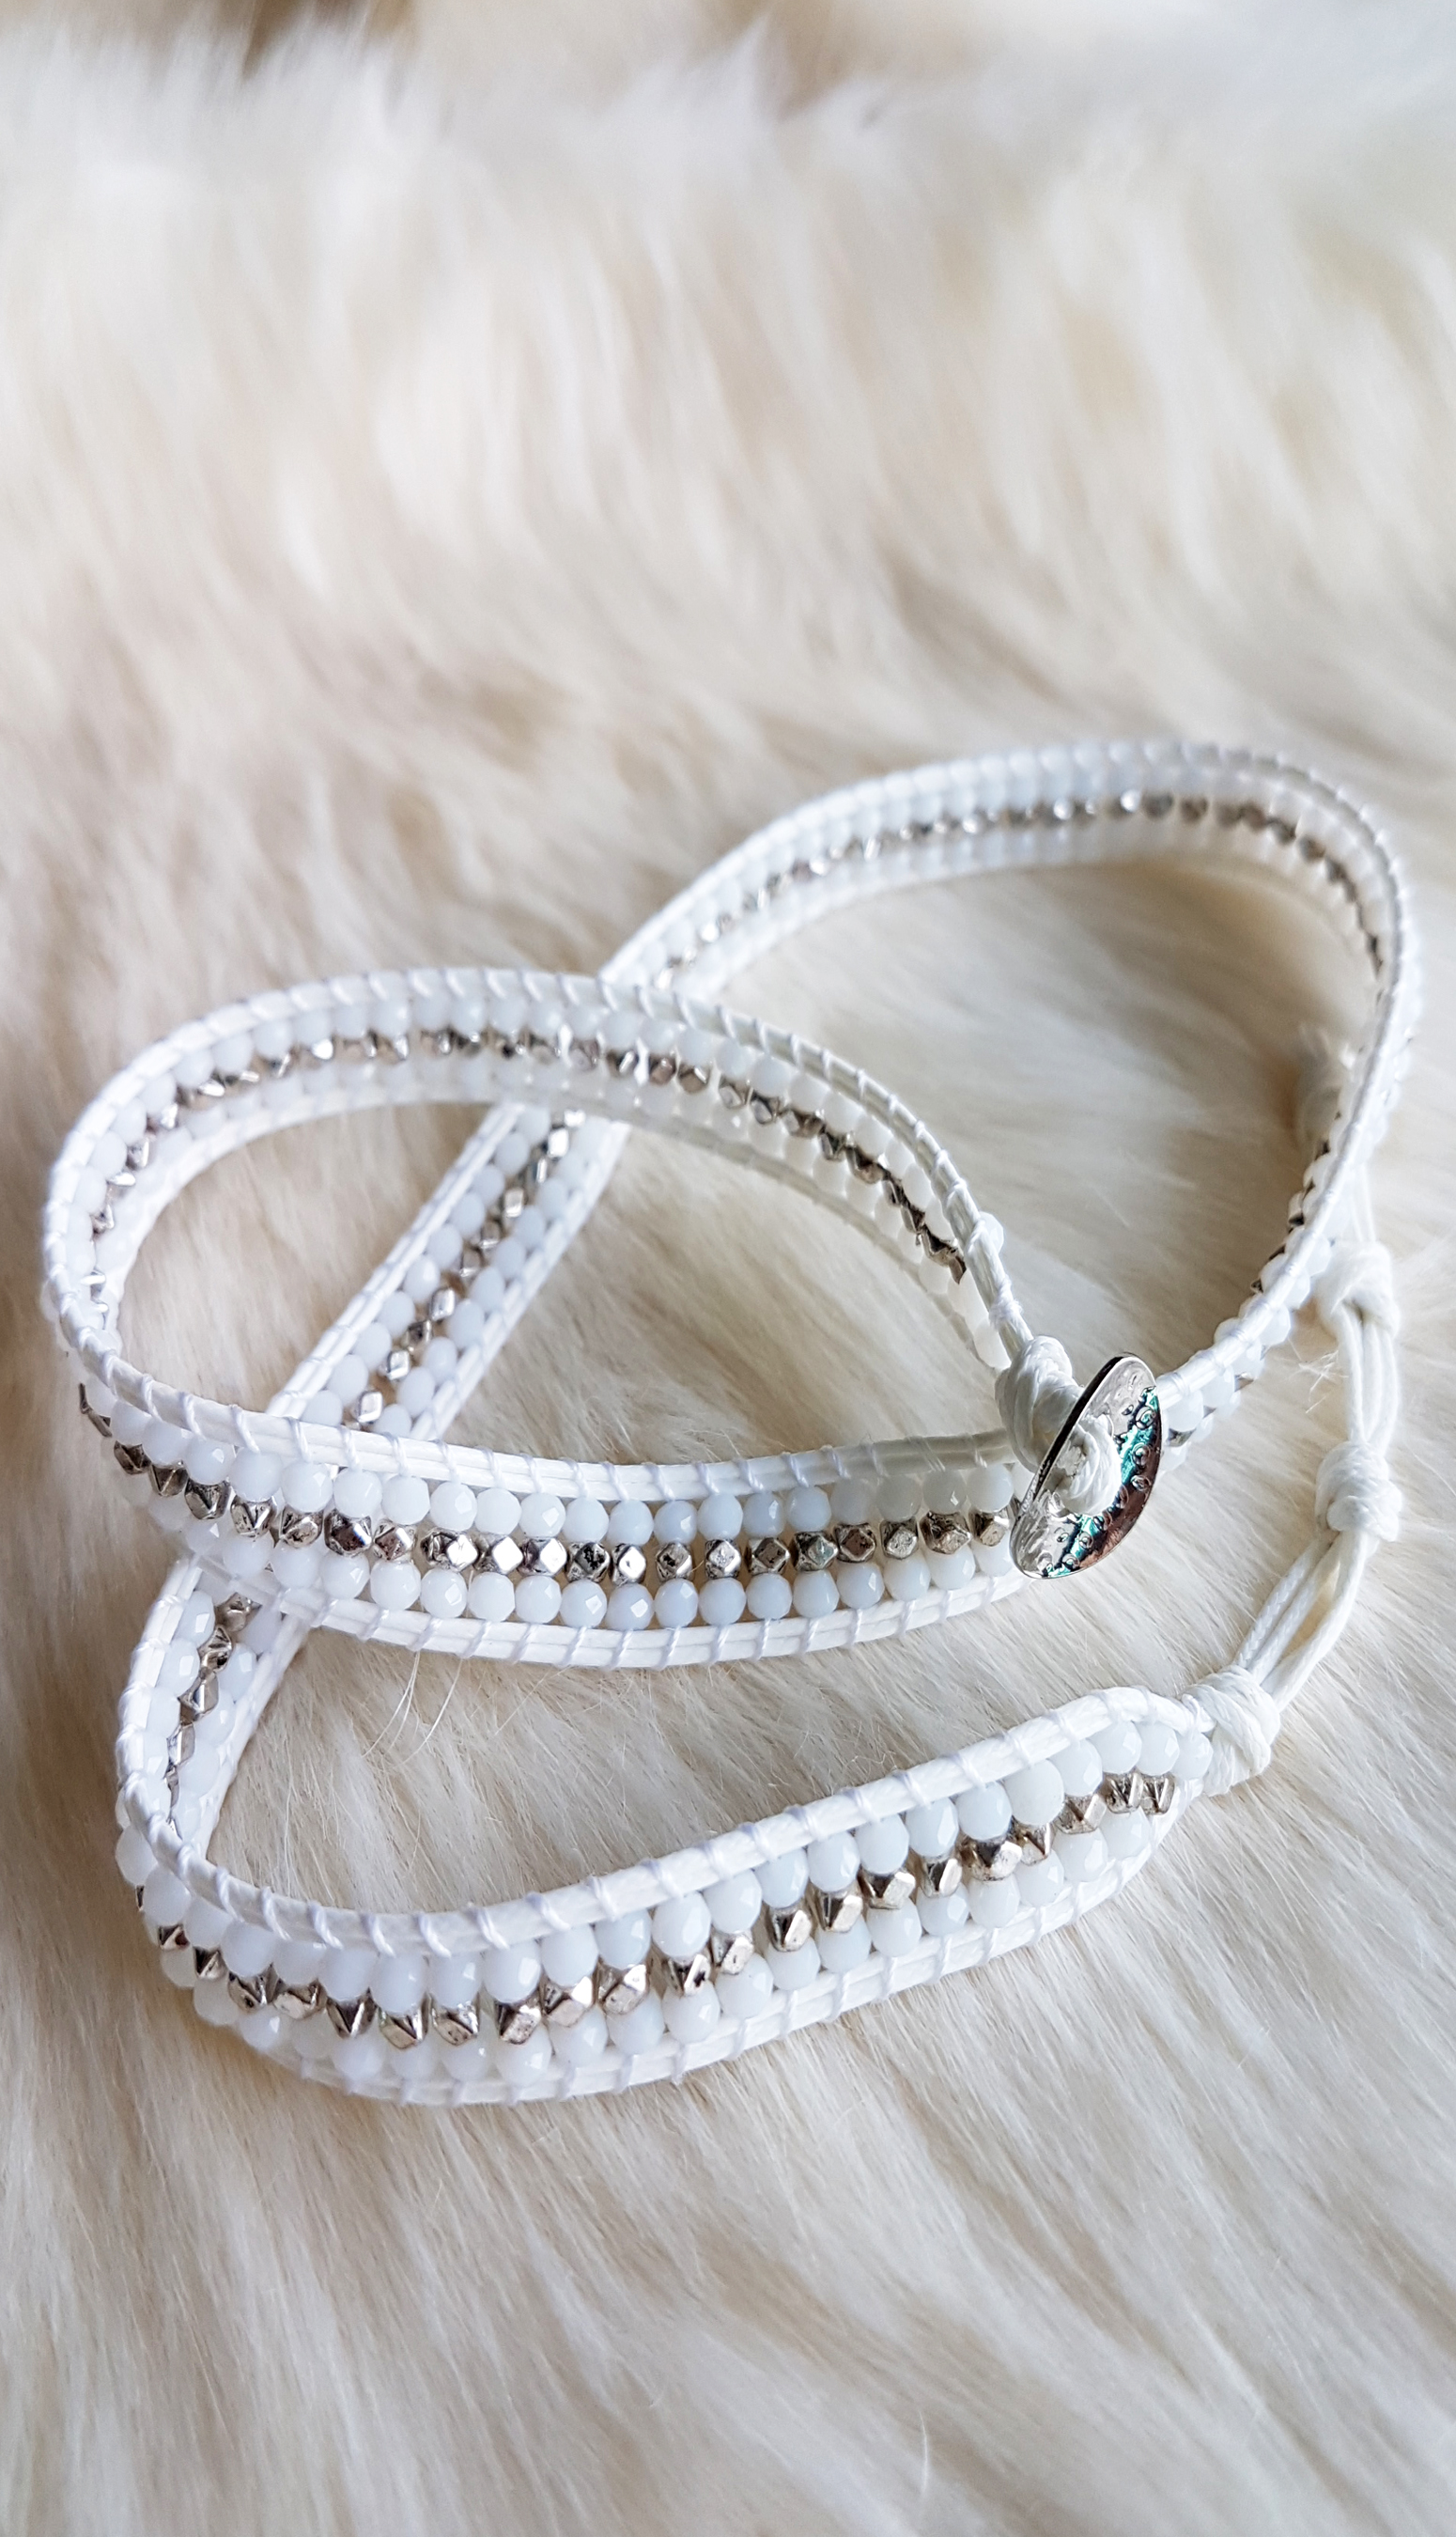 necklace-with-white-and-metallic-beads_2